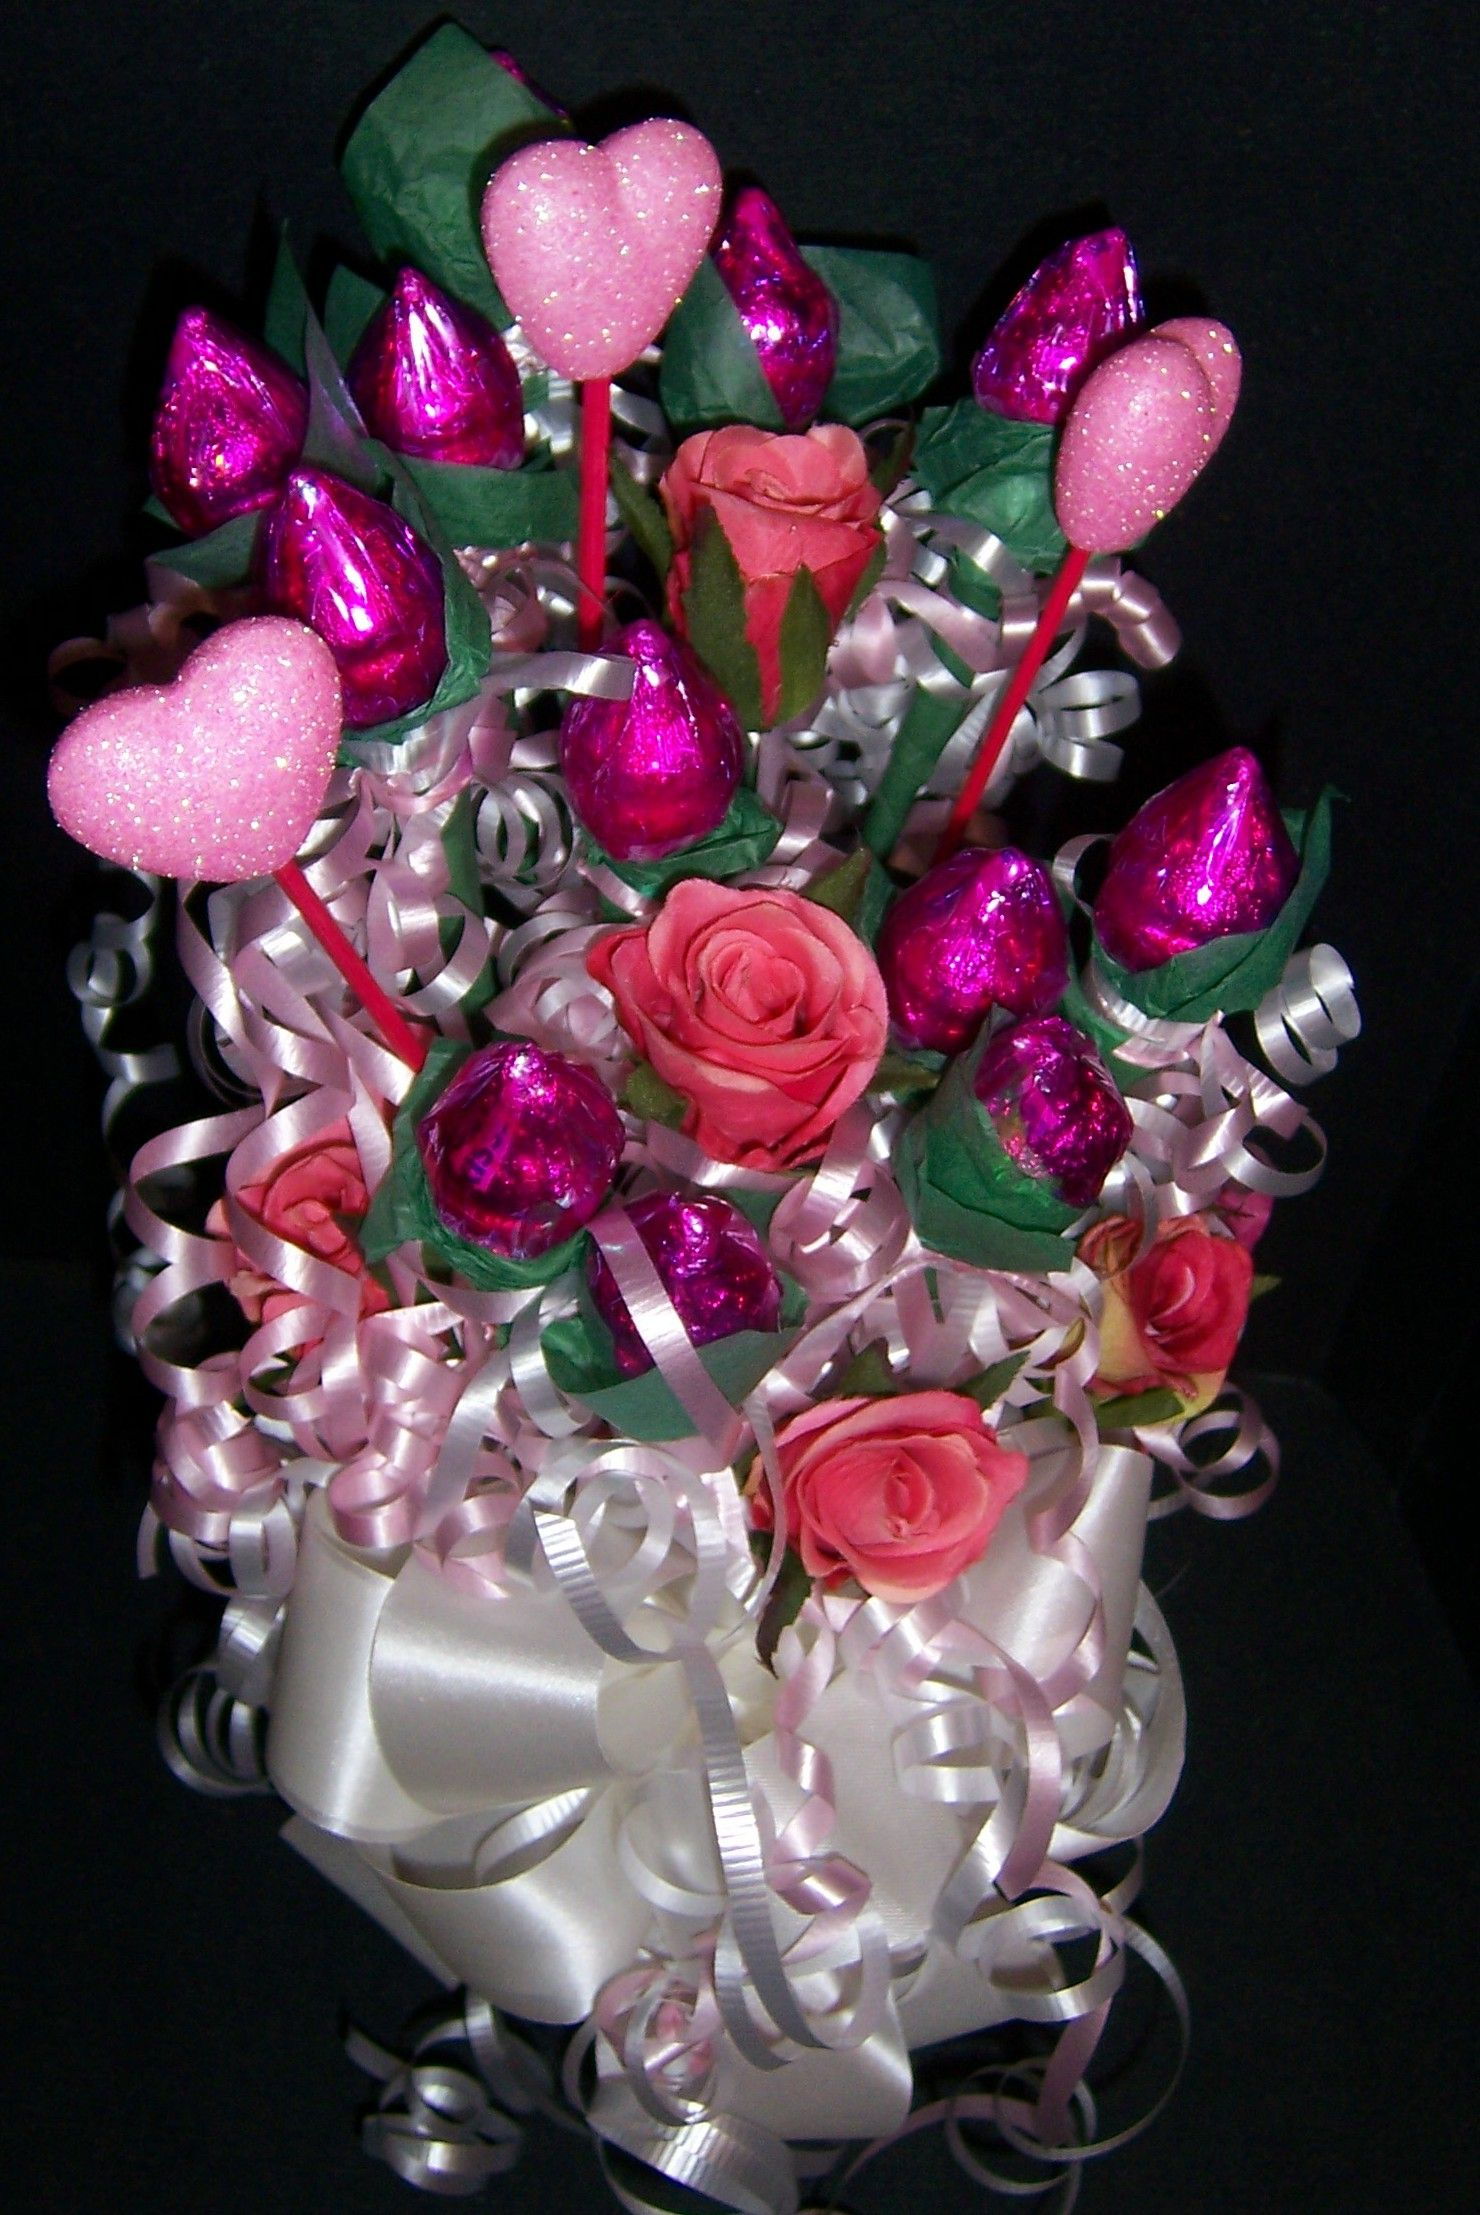 Hershey Kiss Rose Candy Bouquets By Suzys Wrap Shack Suzys Wrap